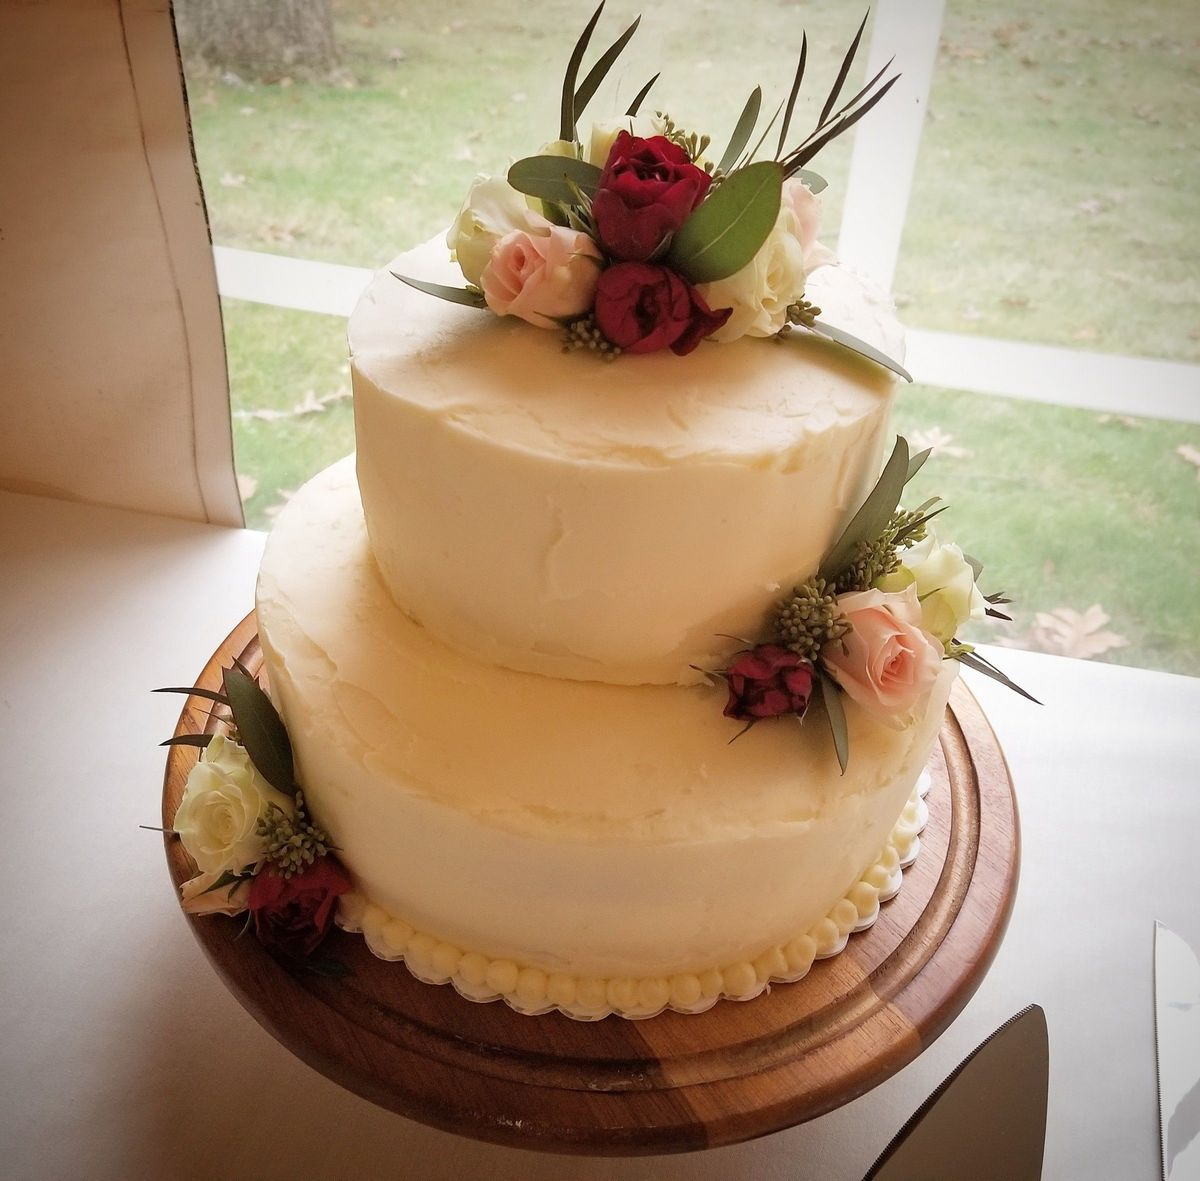 Madison Wedding Cakes Reviews for Cakes